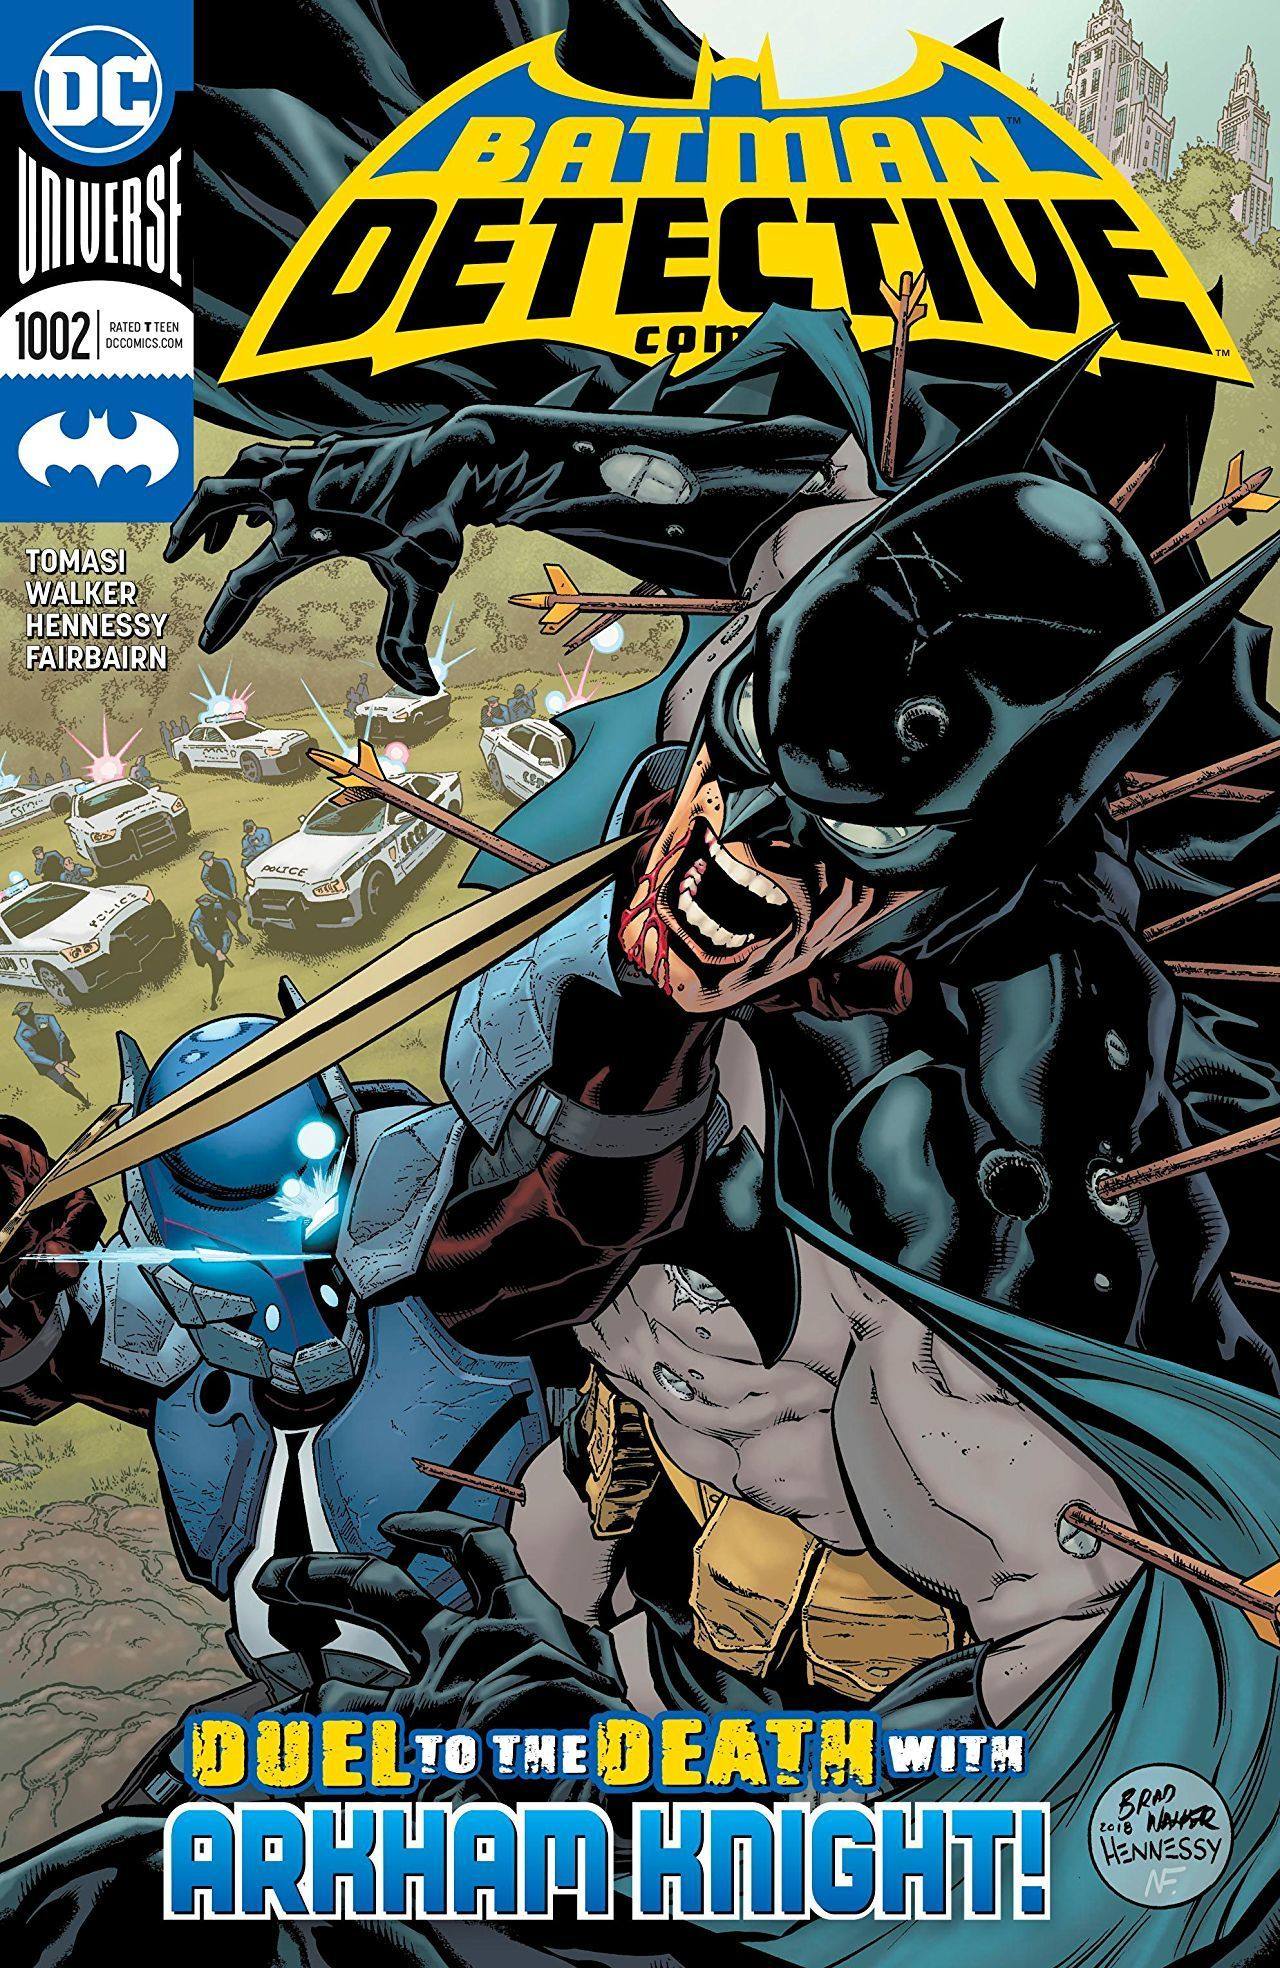 Detective Comics #1002 Places Another Hero in Arkham Knight's Sights